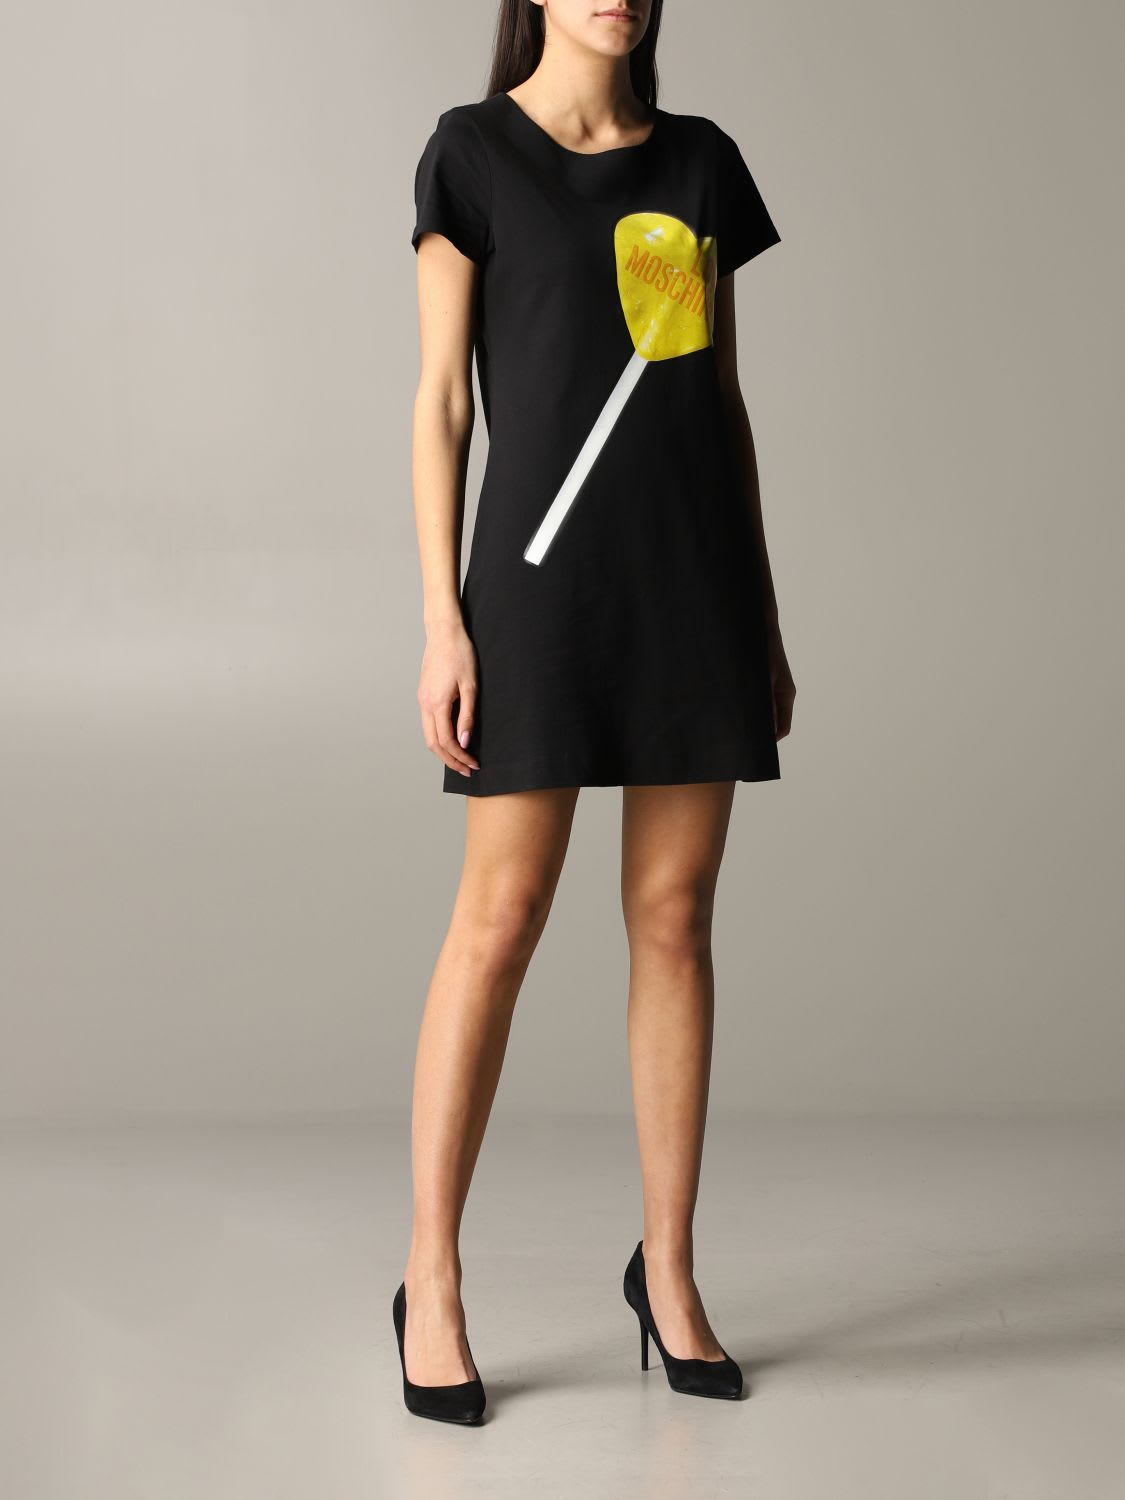 Buy Love Moschino Dress Love Moschino Dress With Lollipop Print online, shop Love Moschino with free shipping